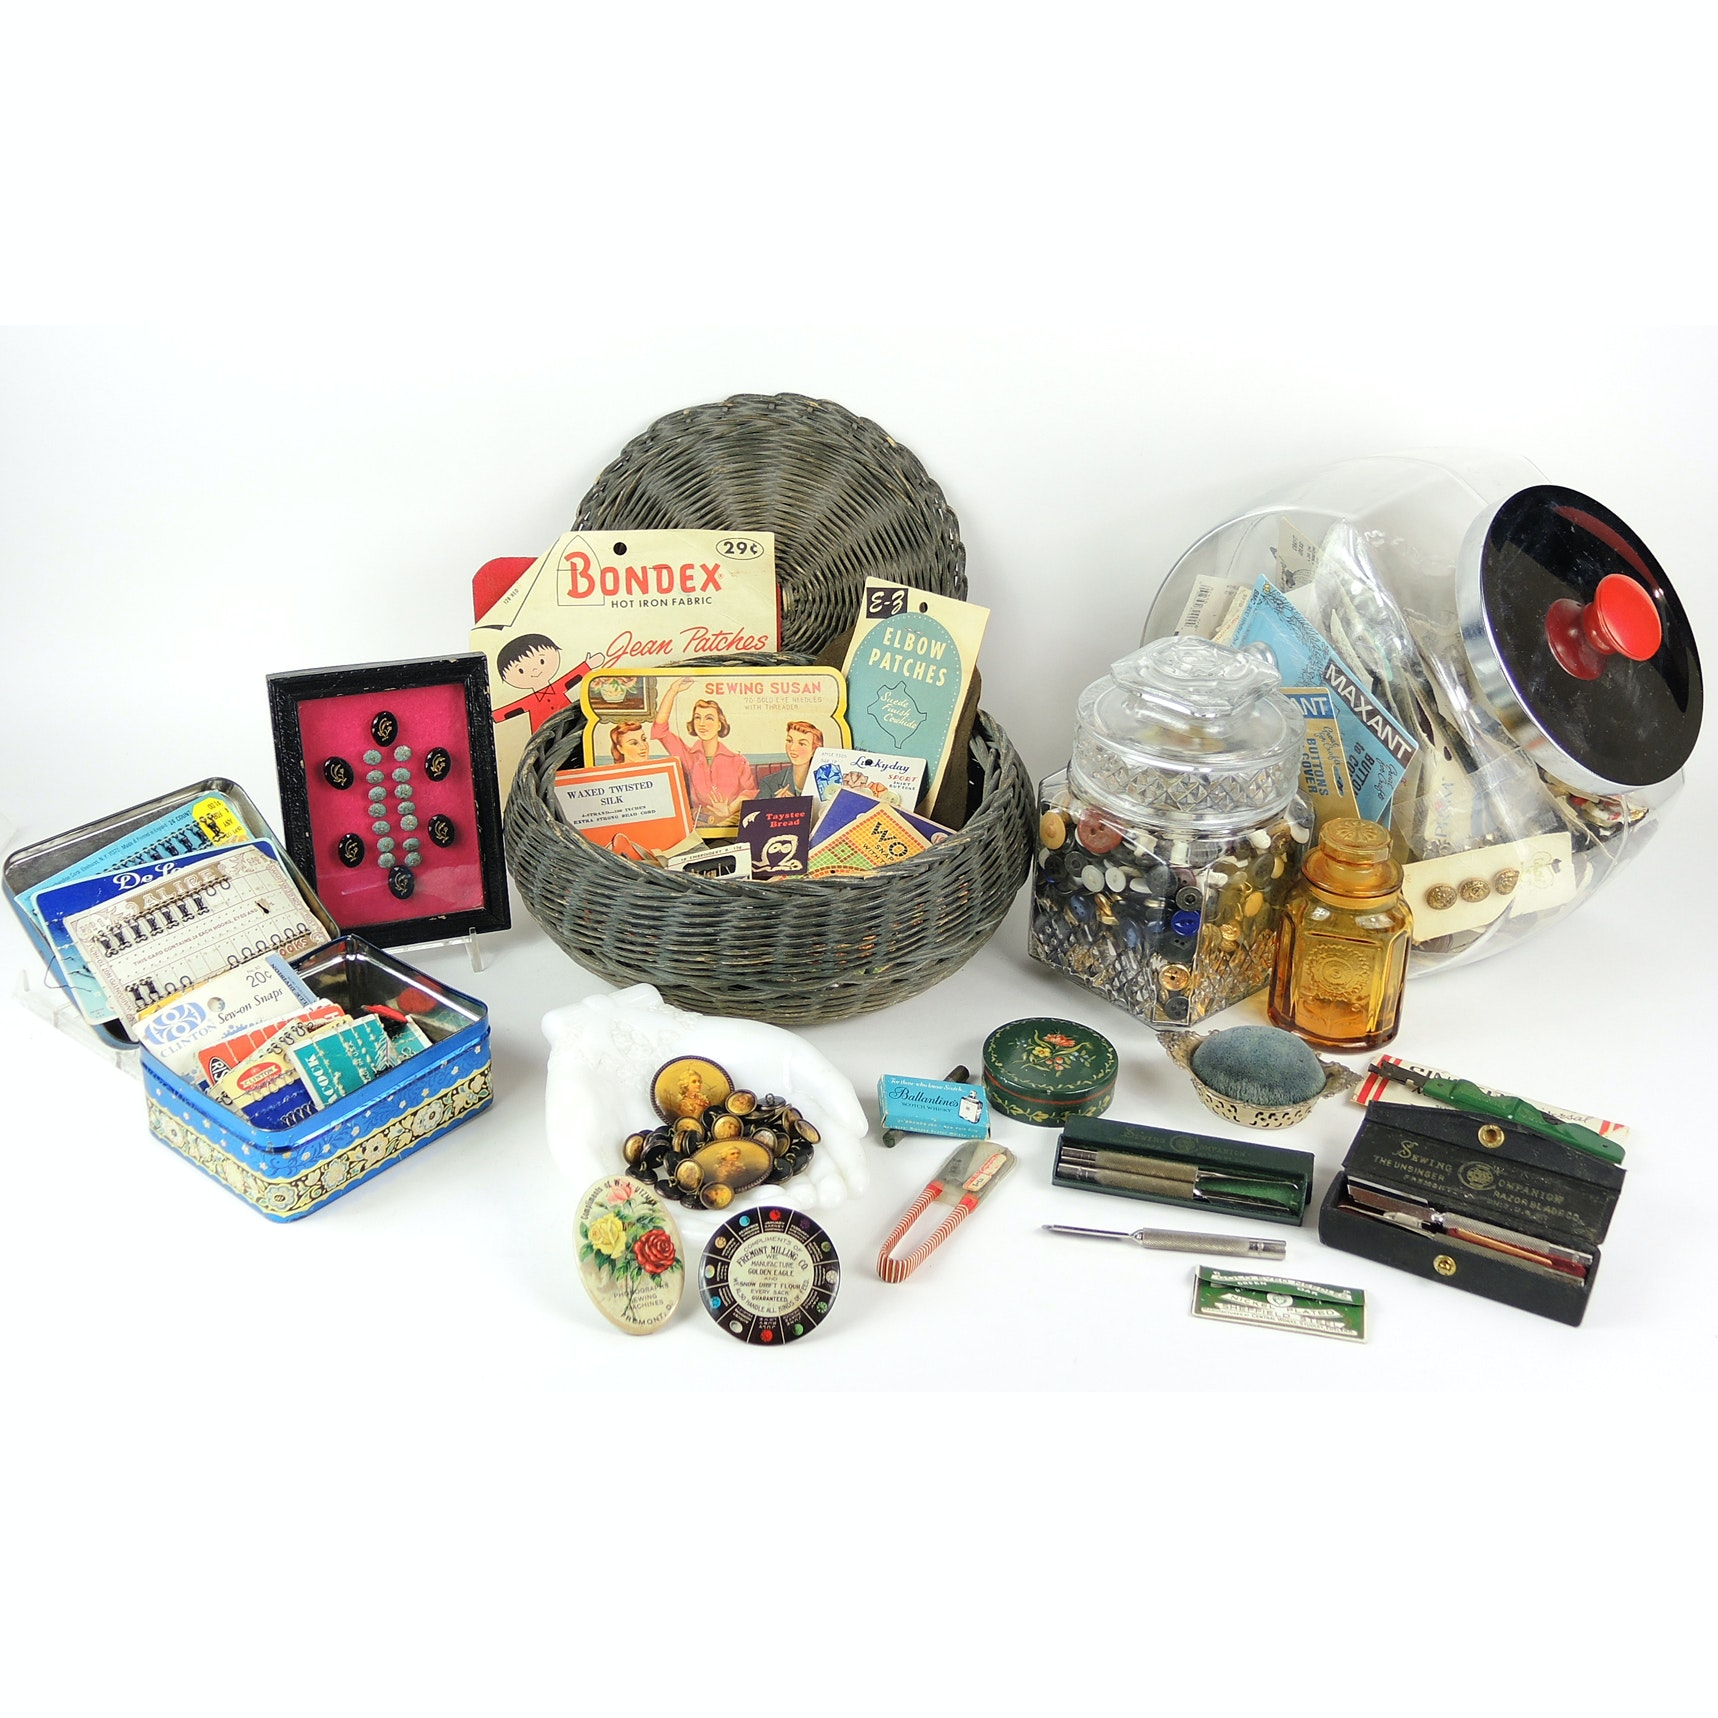 Vintage Sewing Notions and Sewing Basket